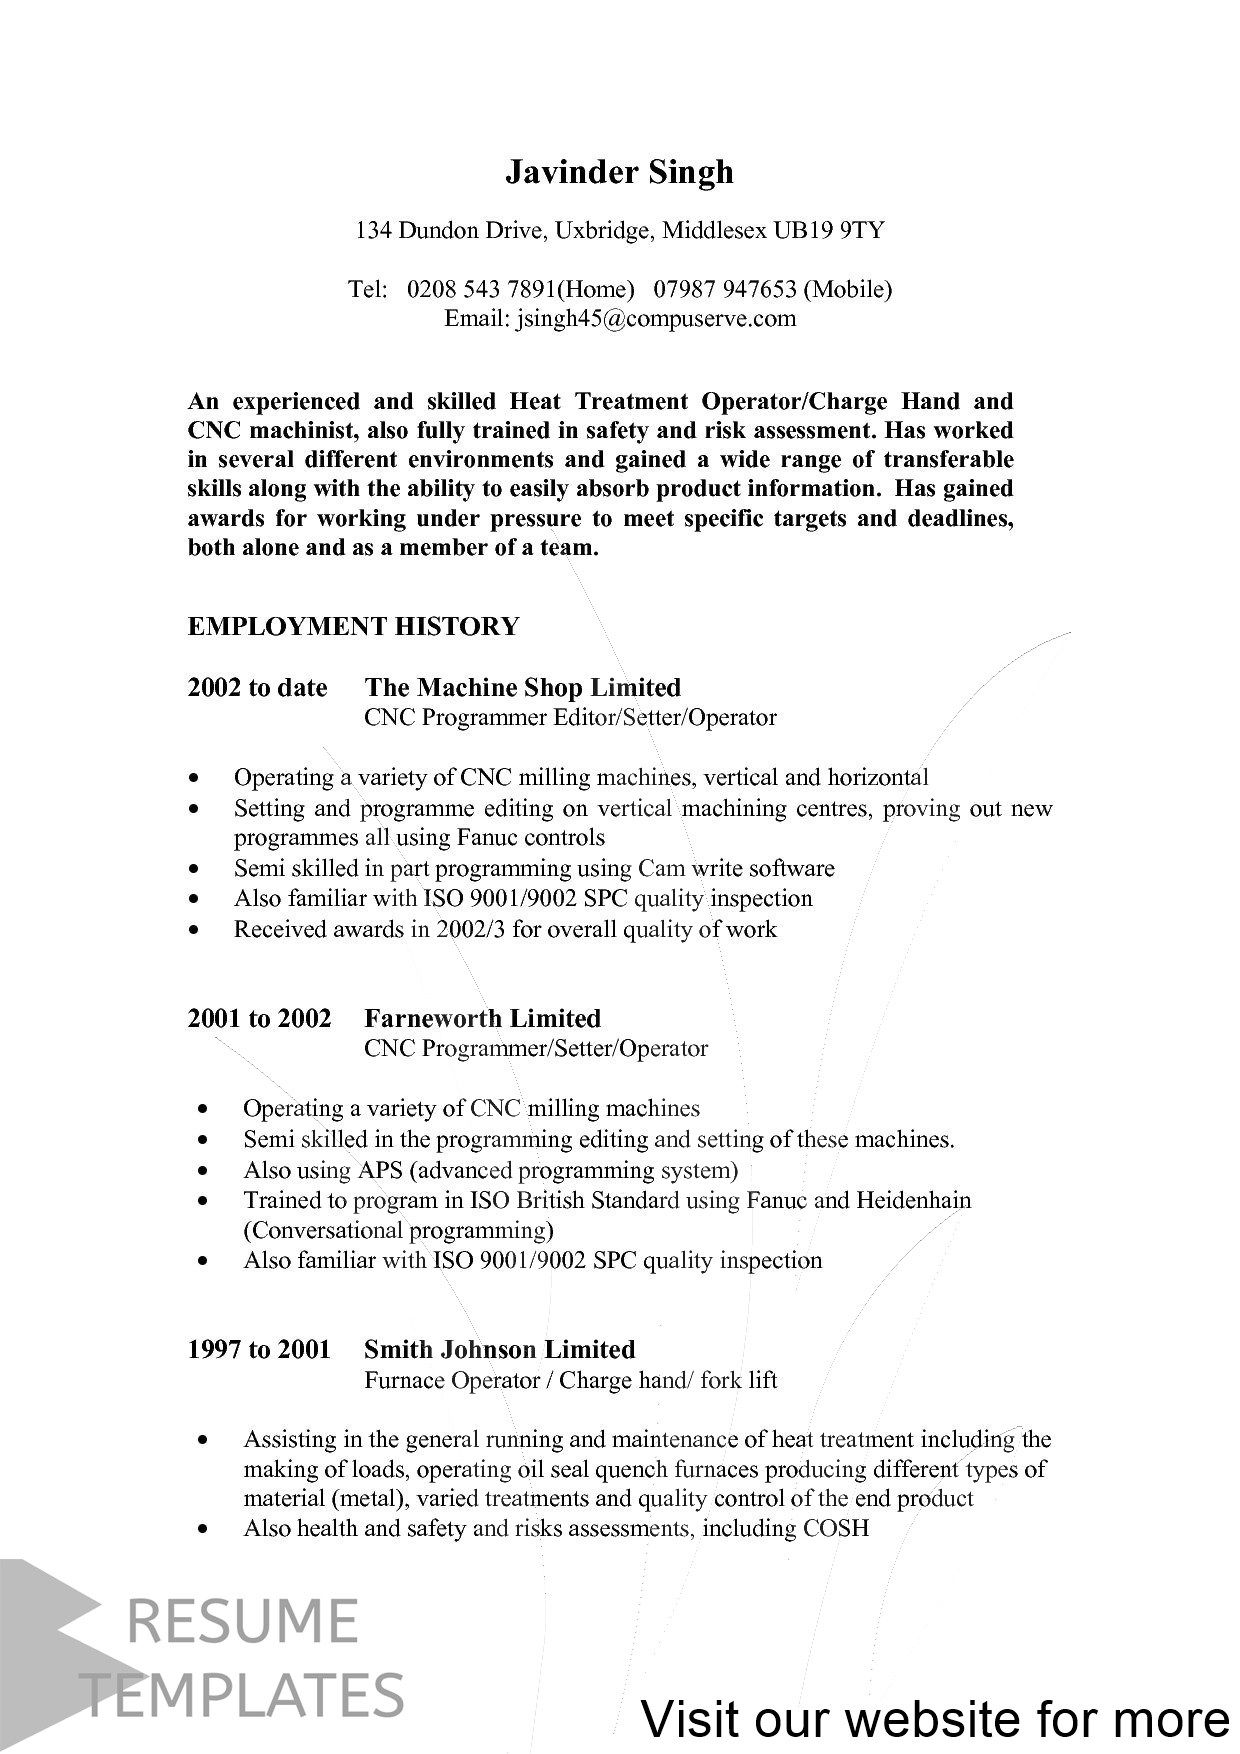 resume example address Professional in 2020 Resume